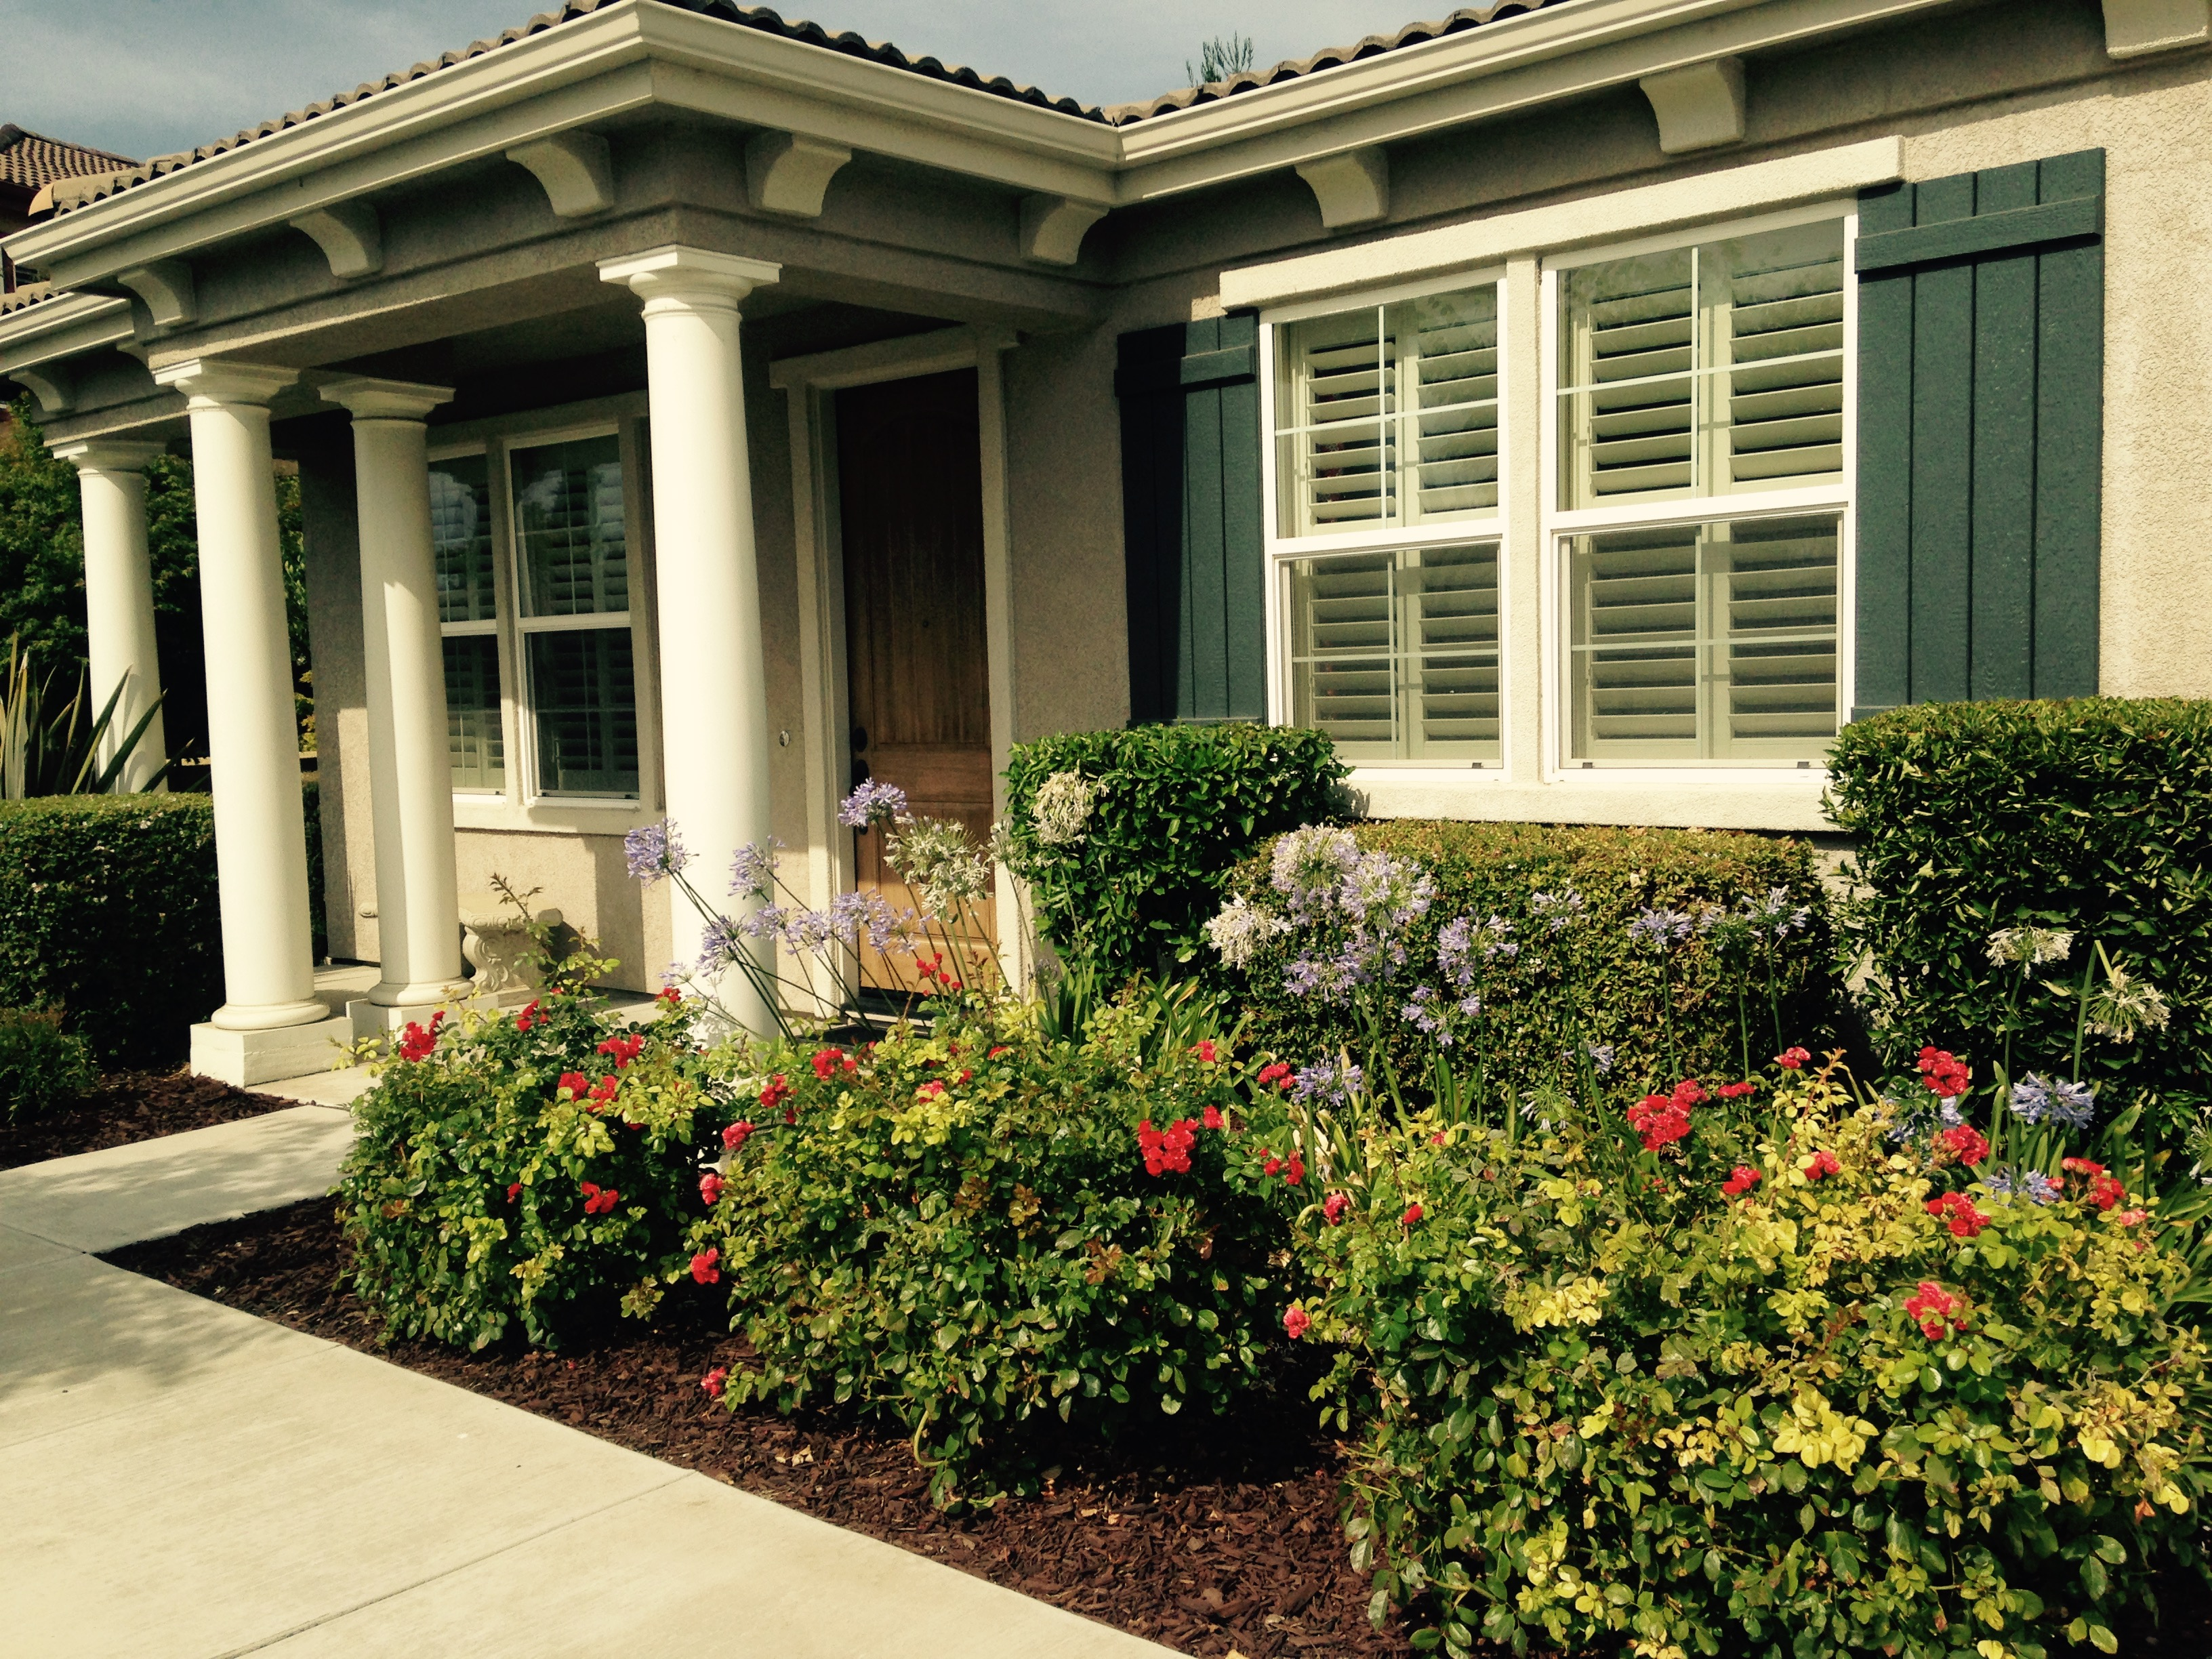 Homes for sale in Lodi what is my house worth real estate in